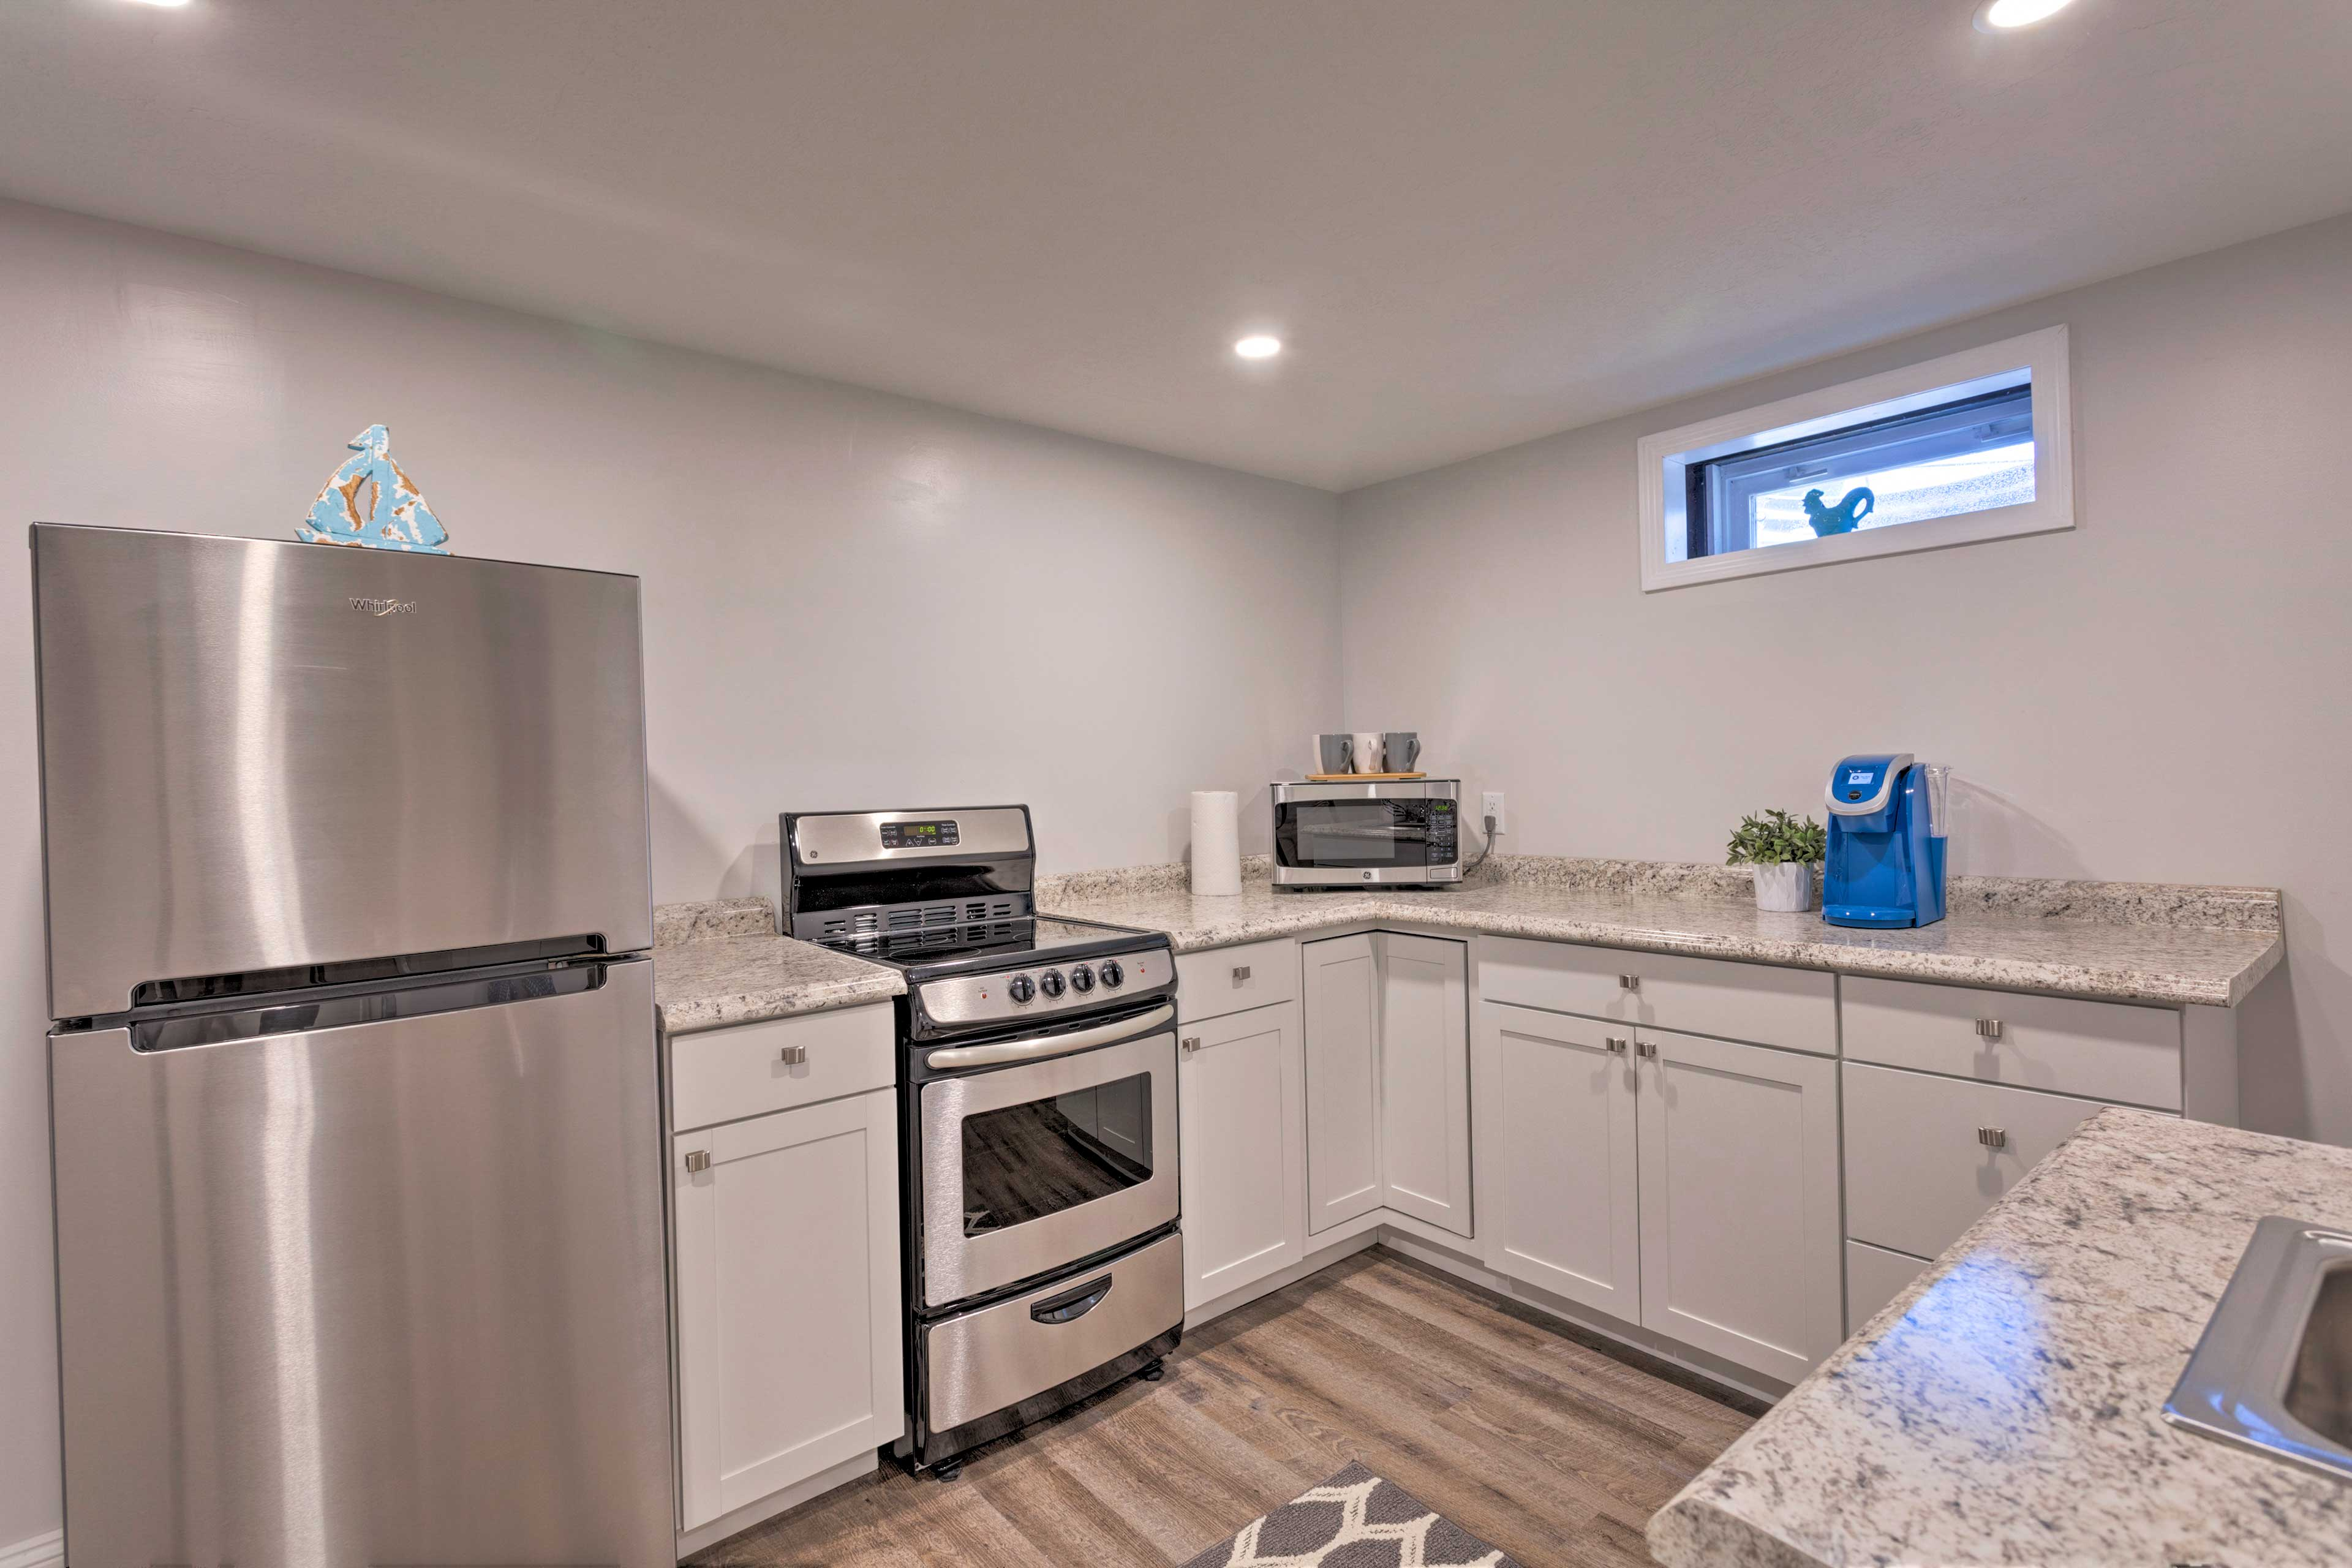 The basement has a kitchenette with new appliances.